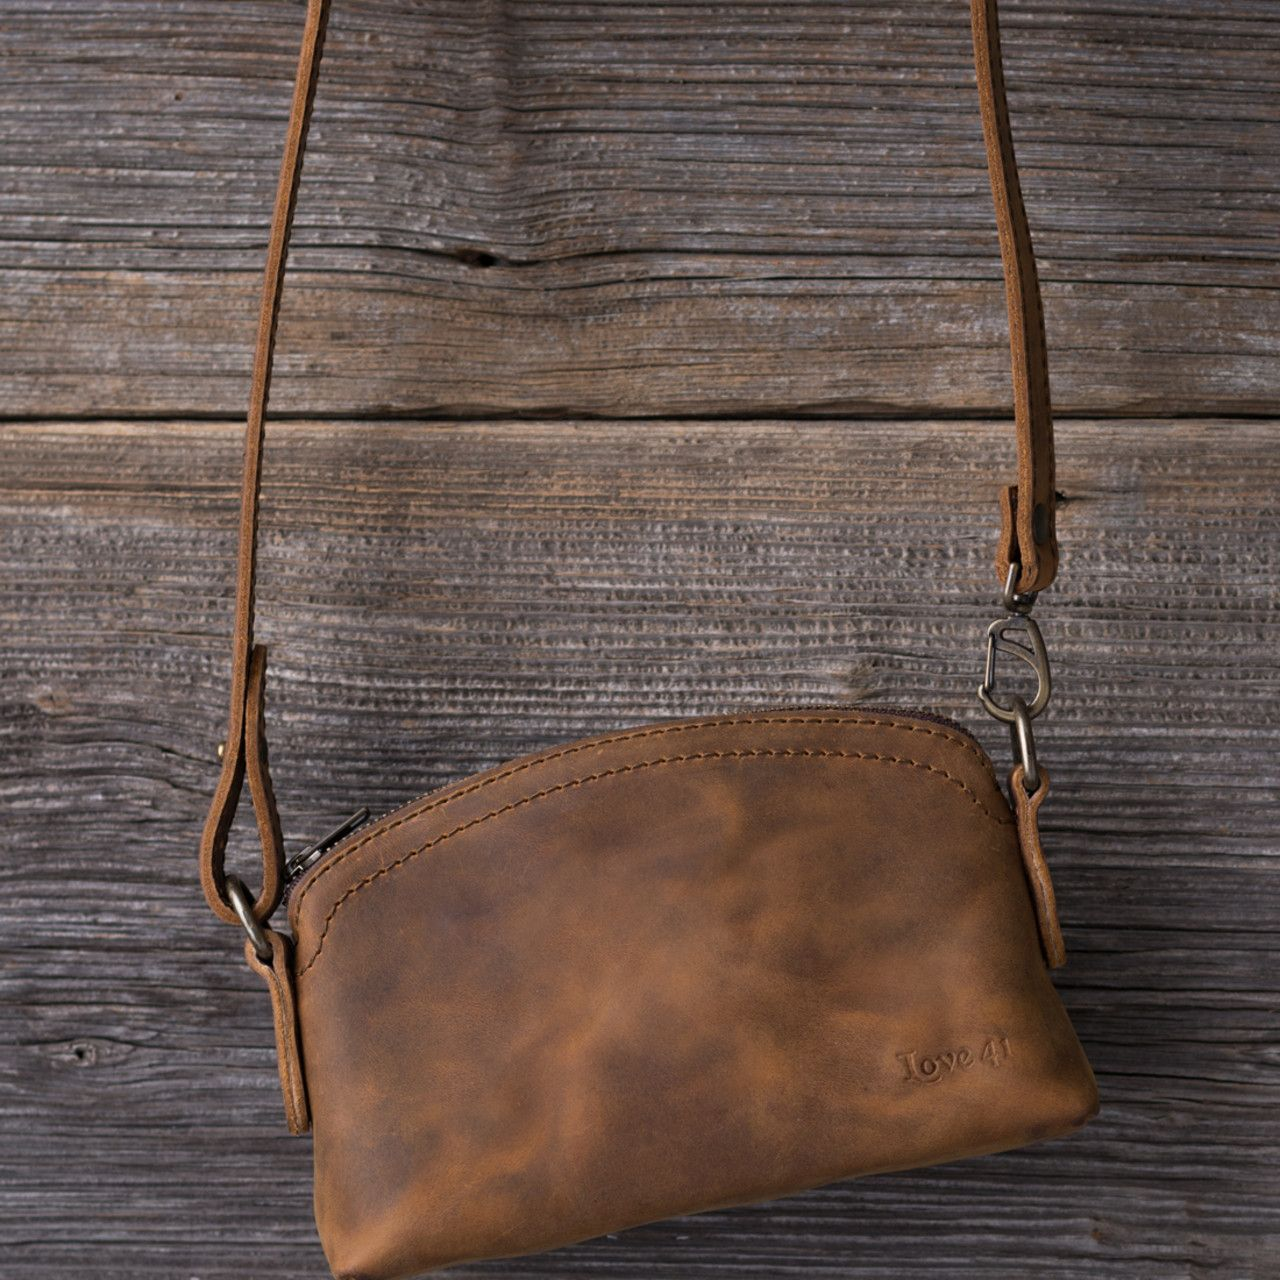 Leather Cosmetic Bag in tobacco